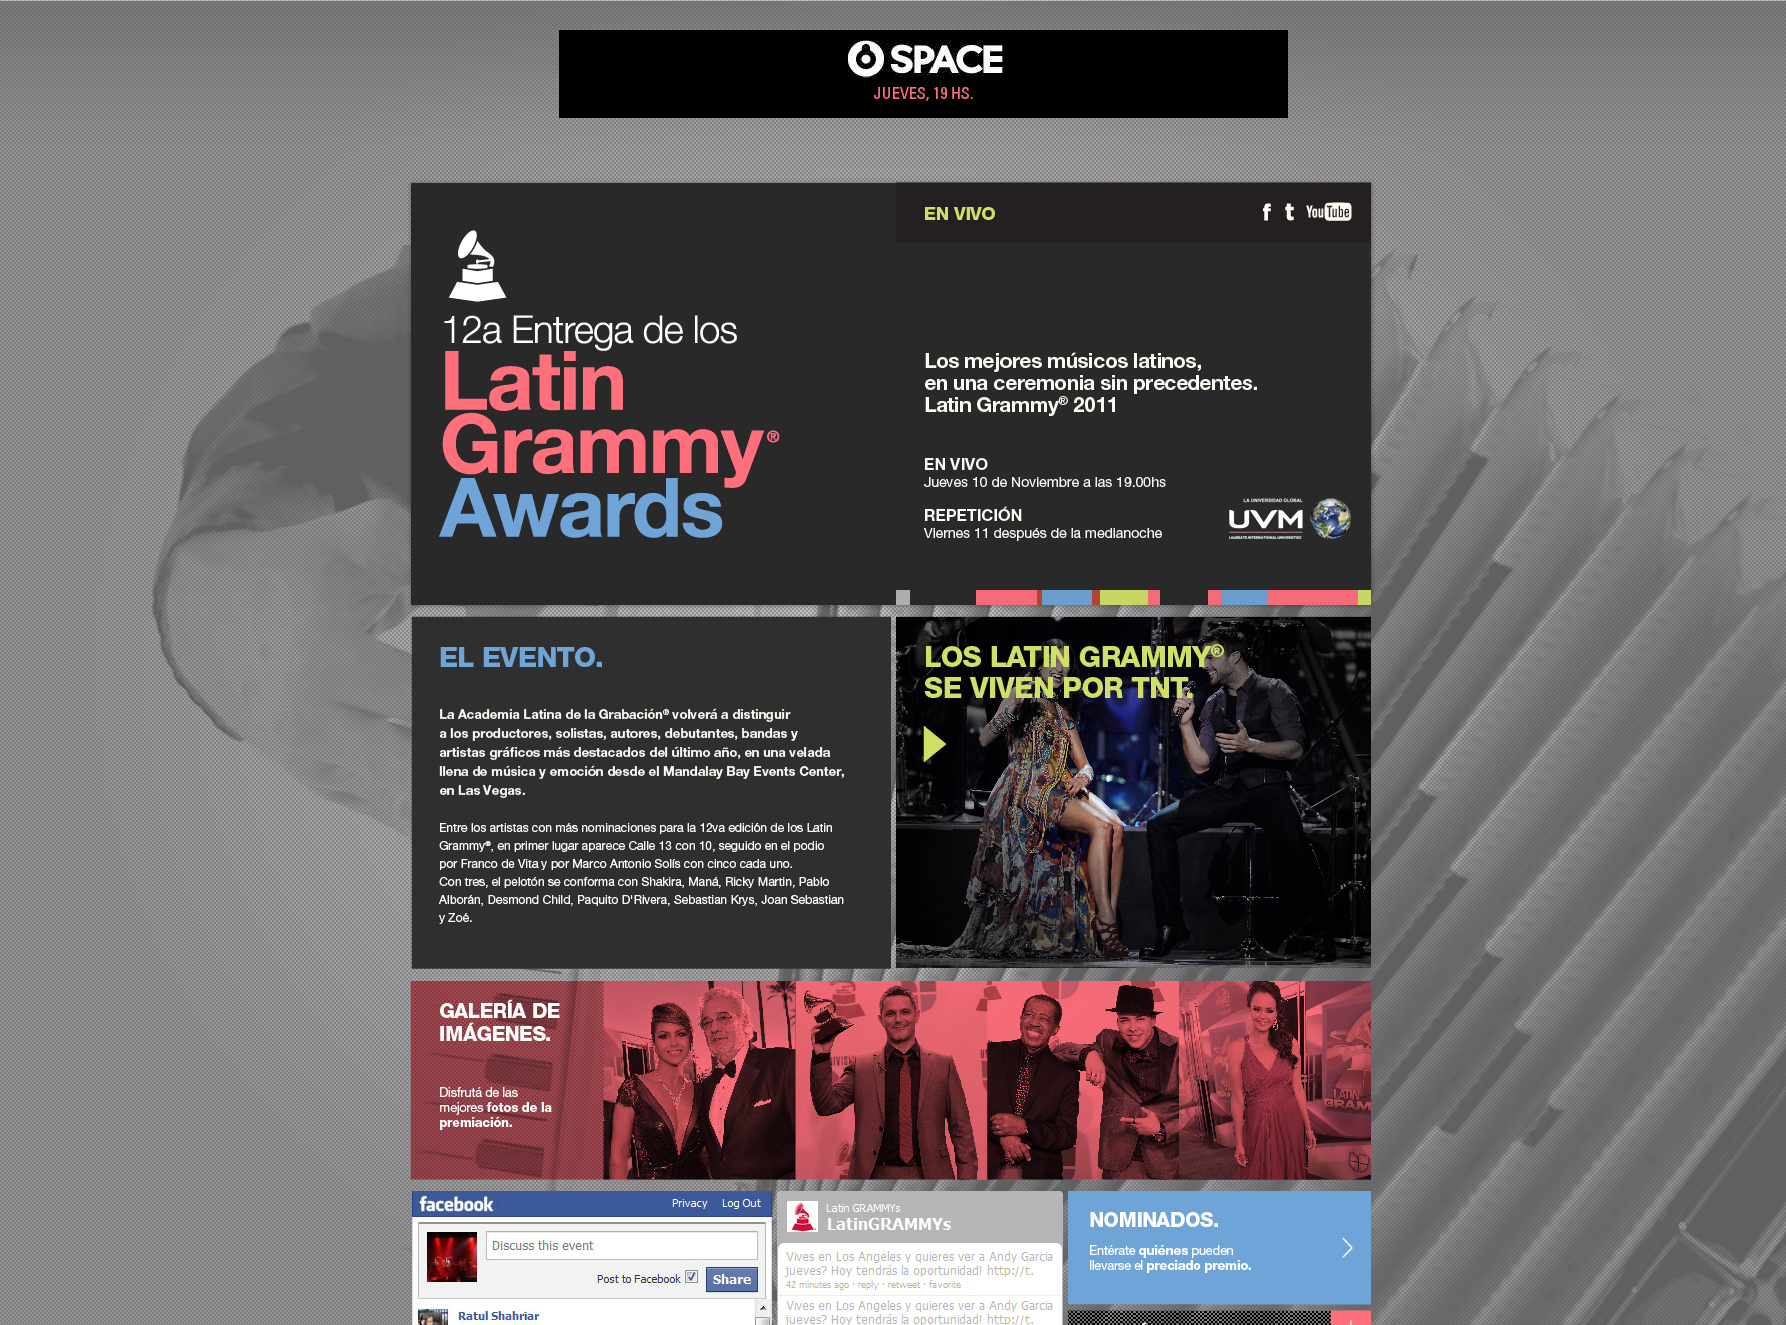 Latin Grammy Awards®